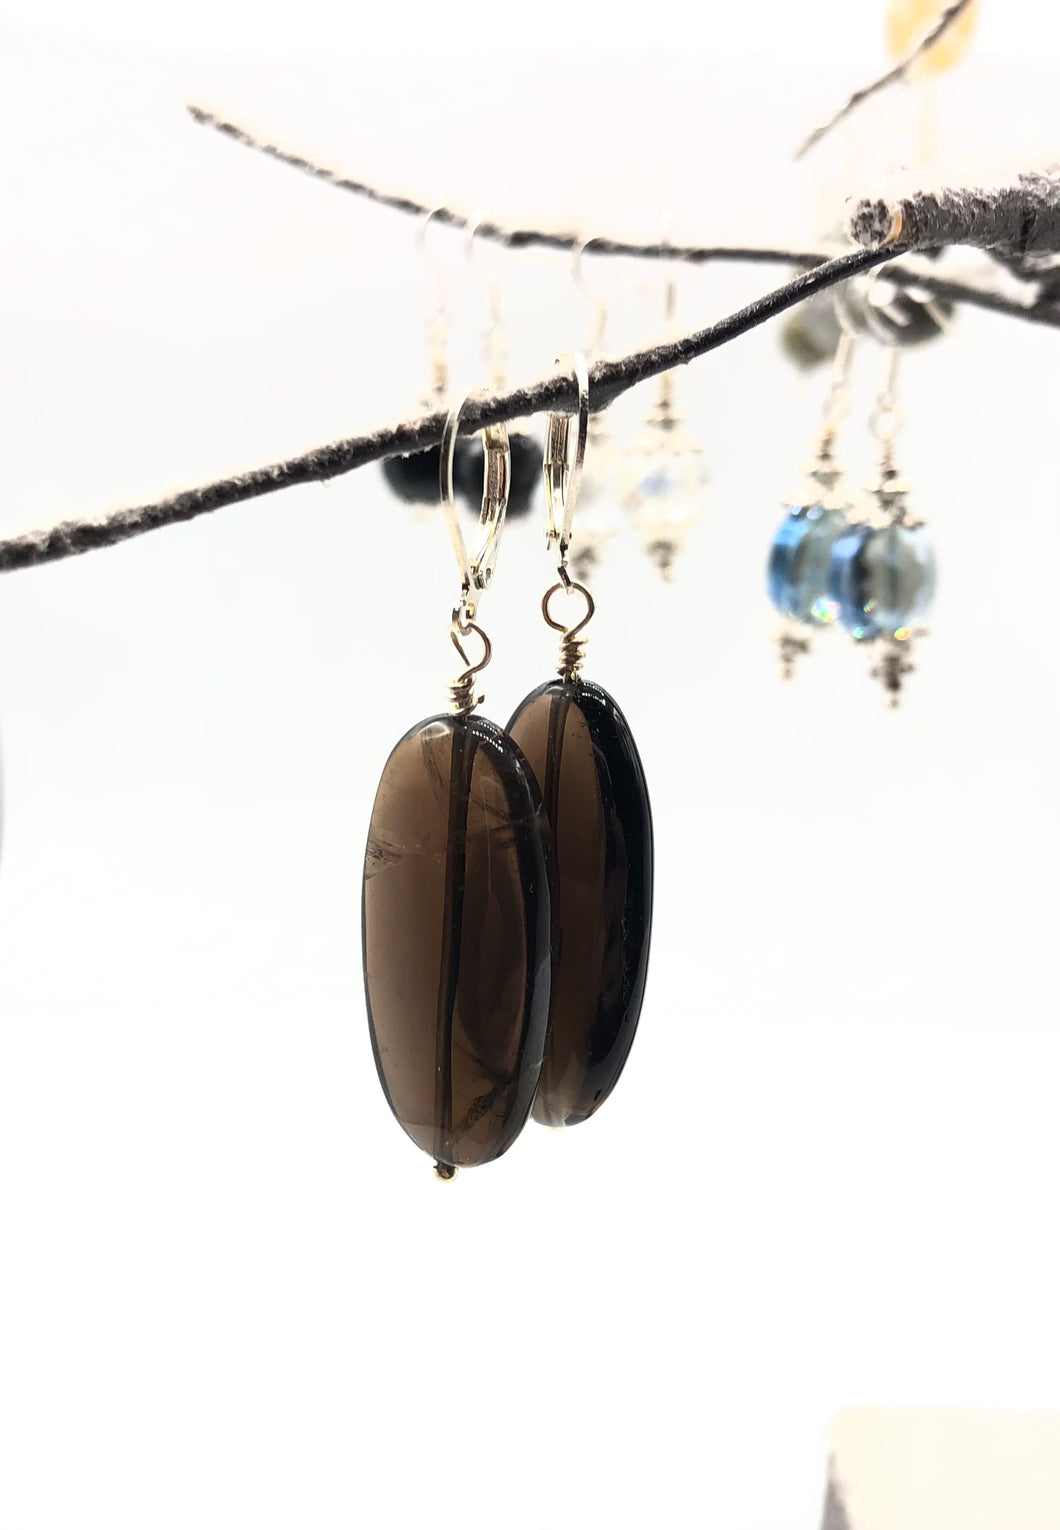 Smoky Quartz Genuine Stone Handmade Earrings FREE SHIPPING